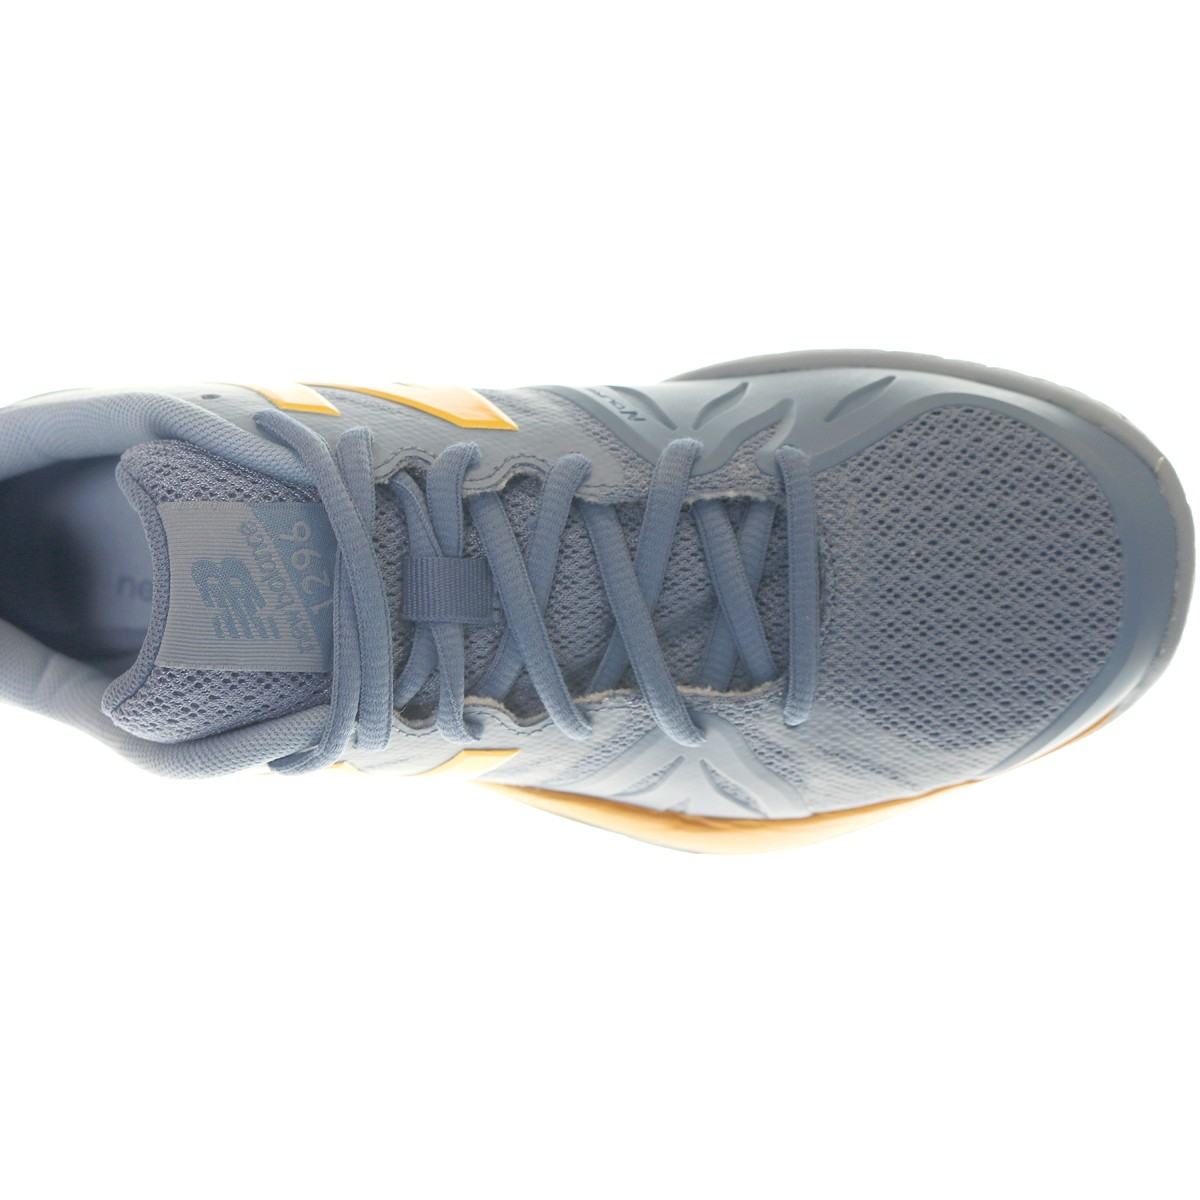 Wc1296 New Femme New Balance Chaussures Chaussures Qrtdsh